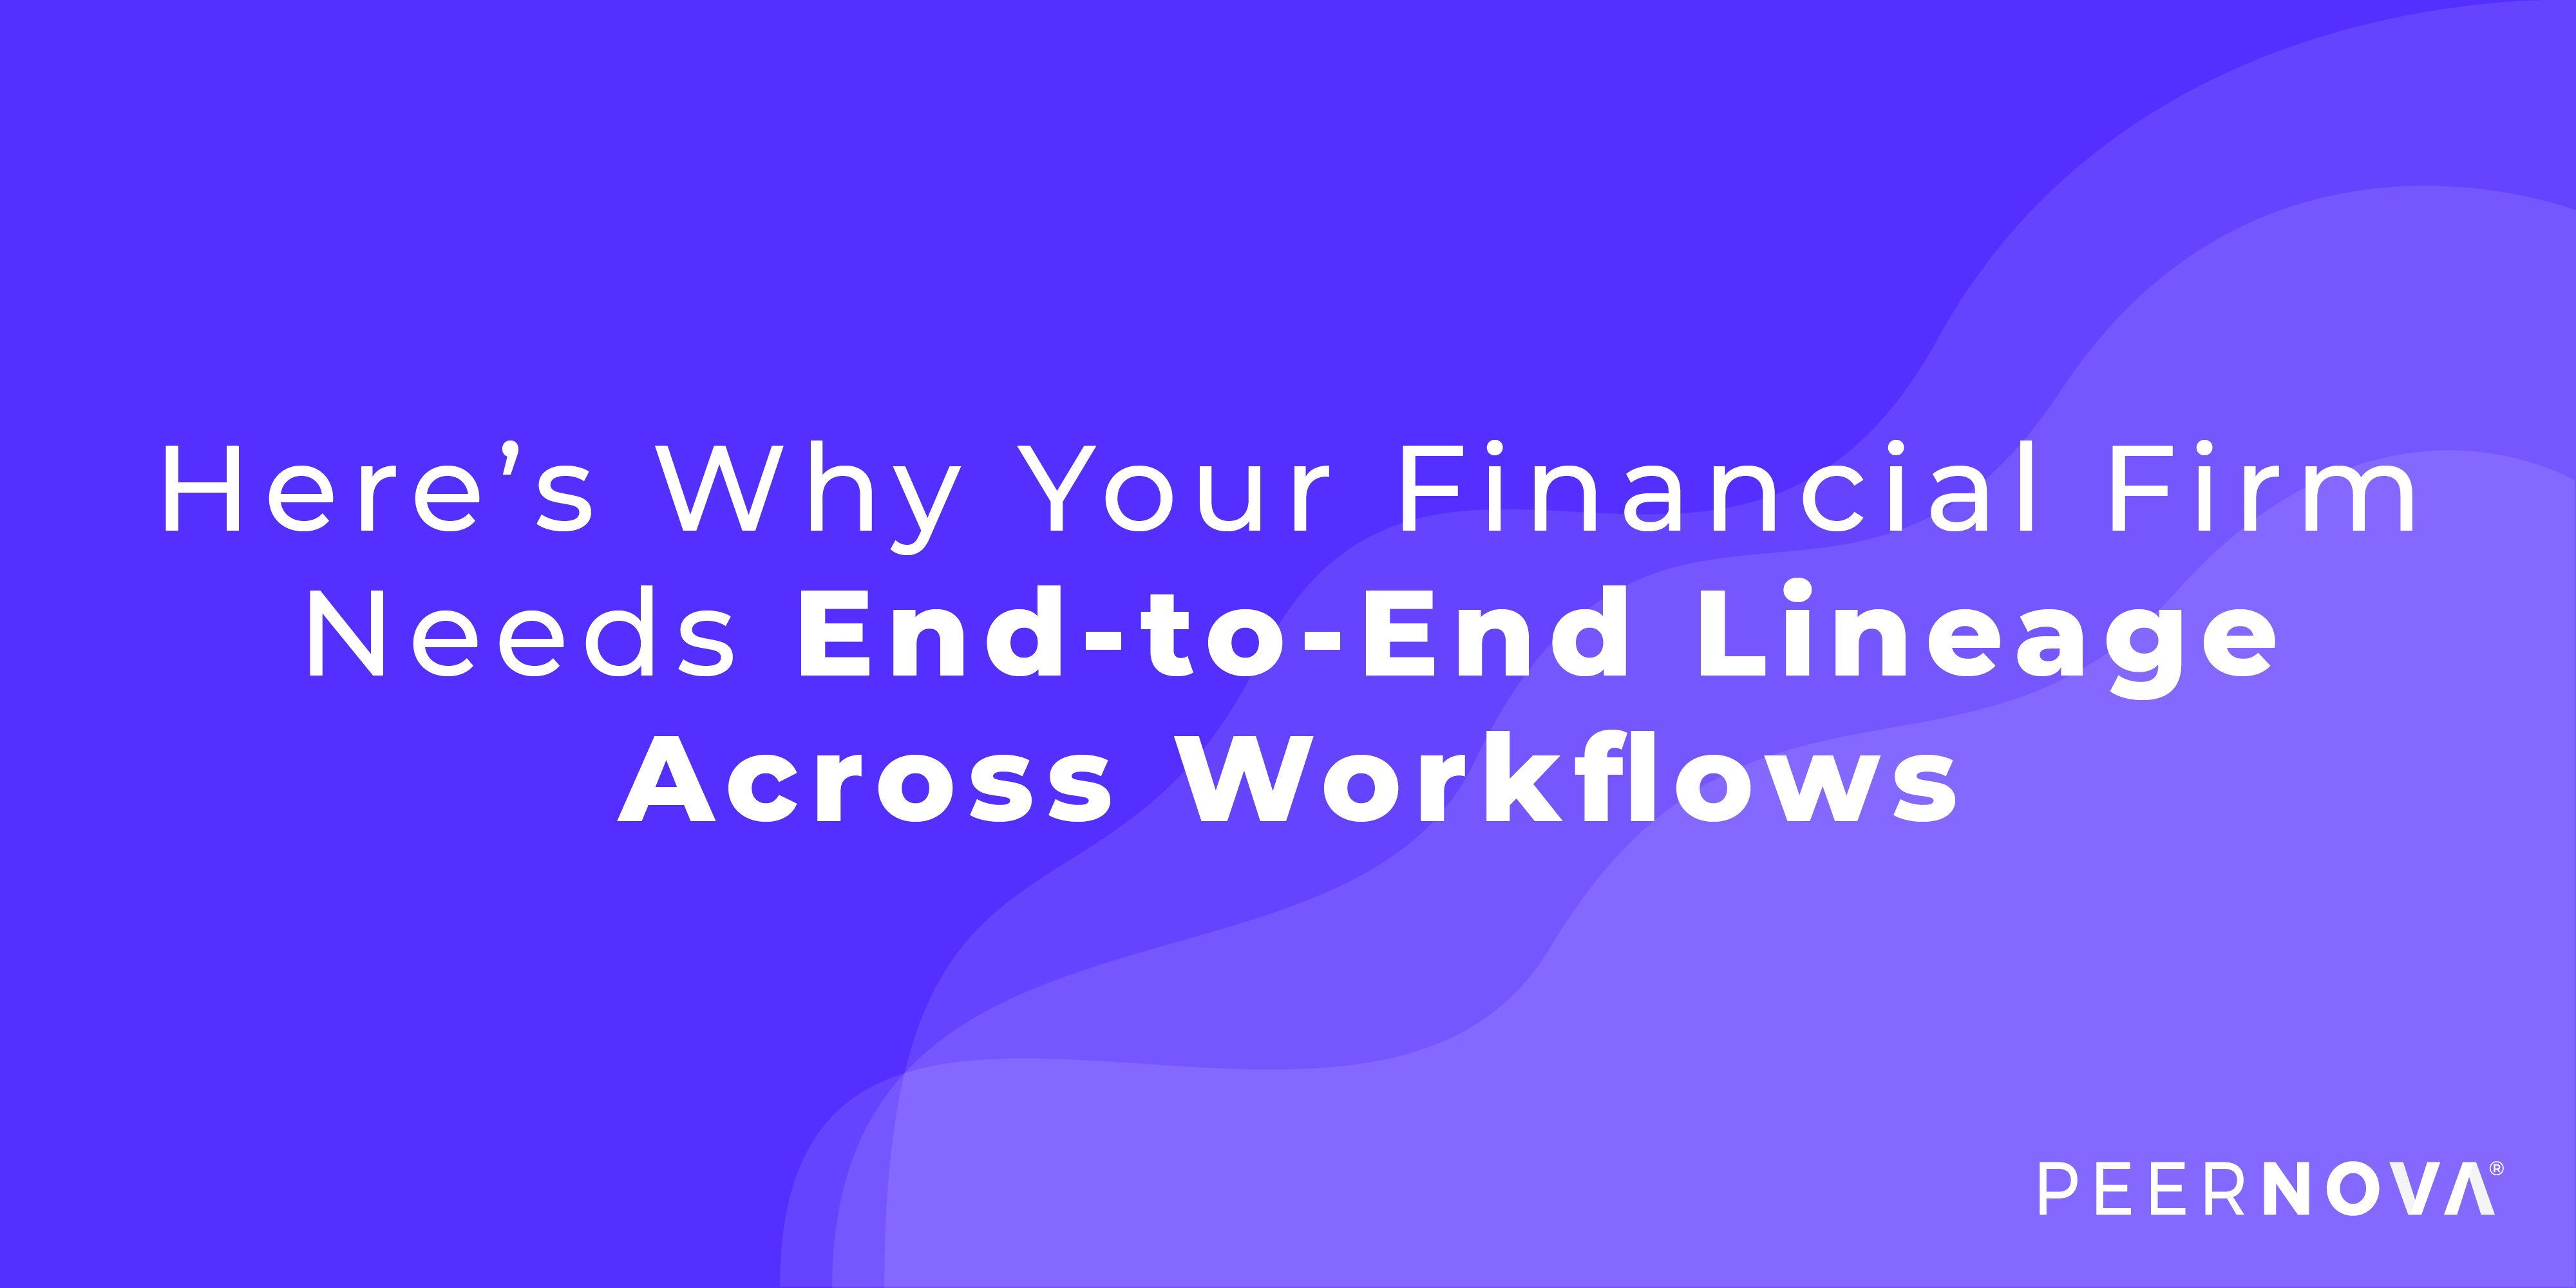 Here's Why Your Financial Firm Needs End-to-End Lineage Across Workflows